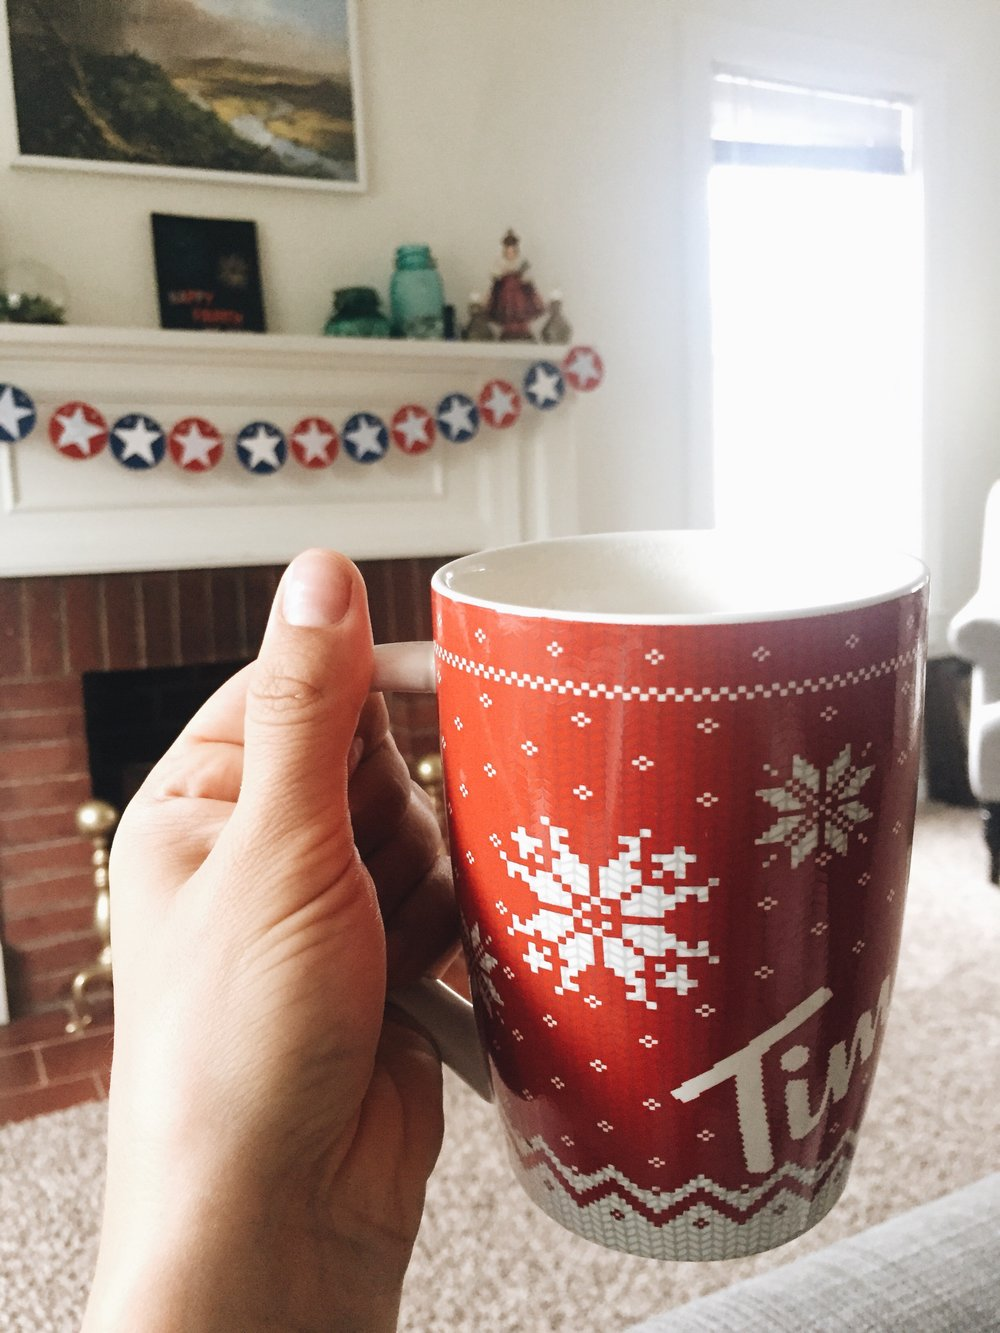 Christmas-in-July mug filled with fall, no contradictions there.